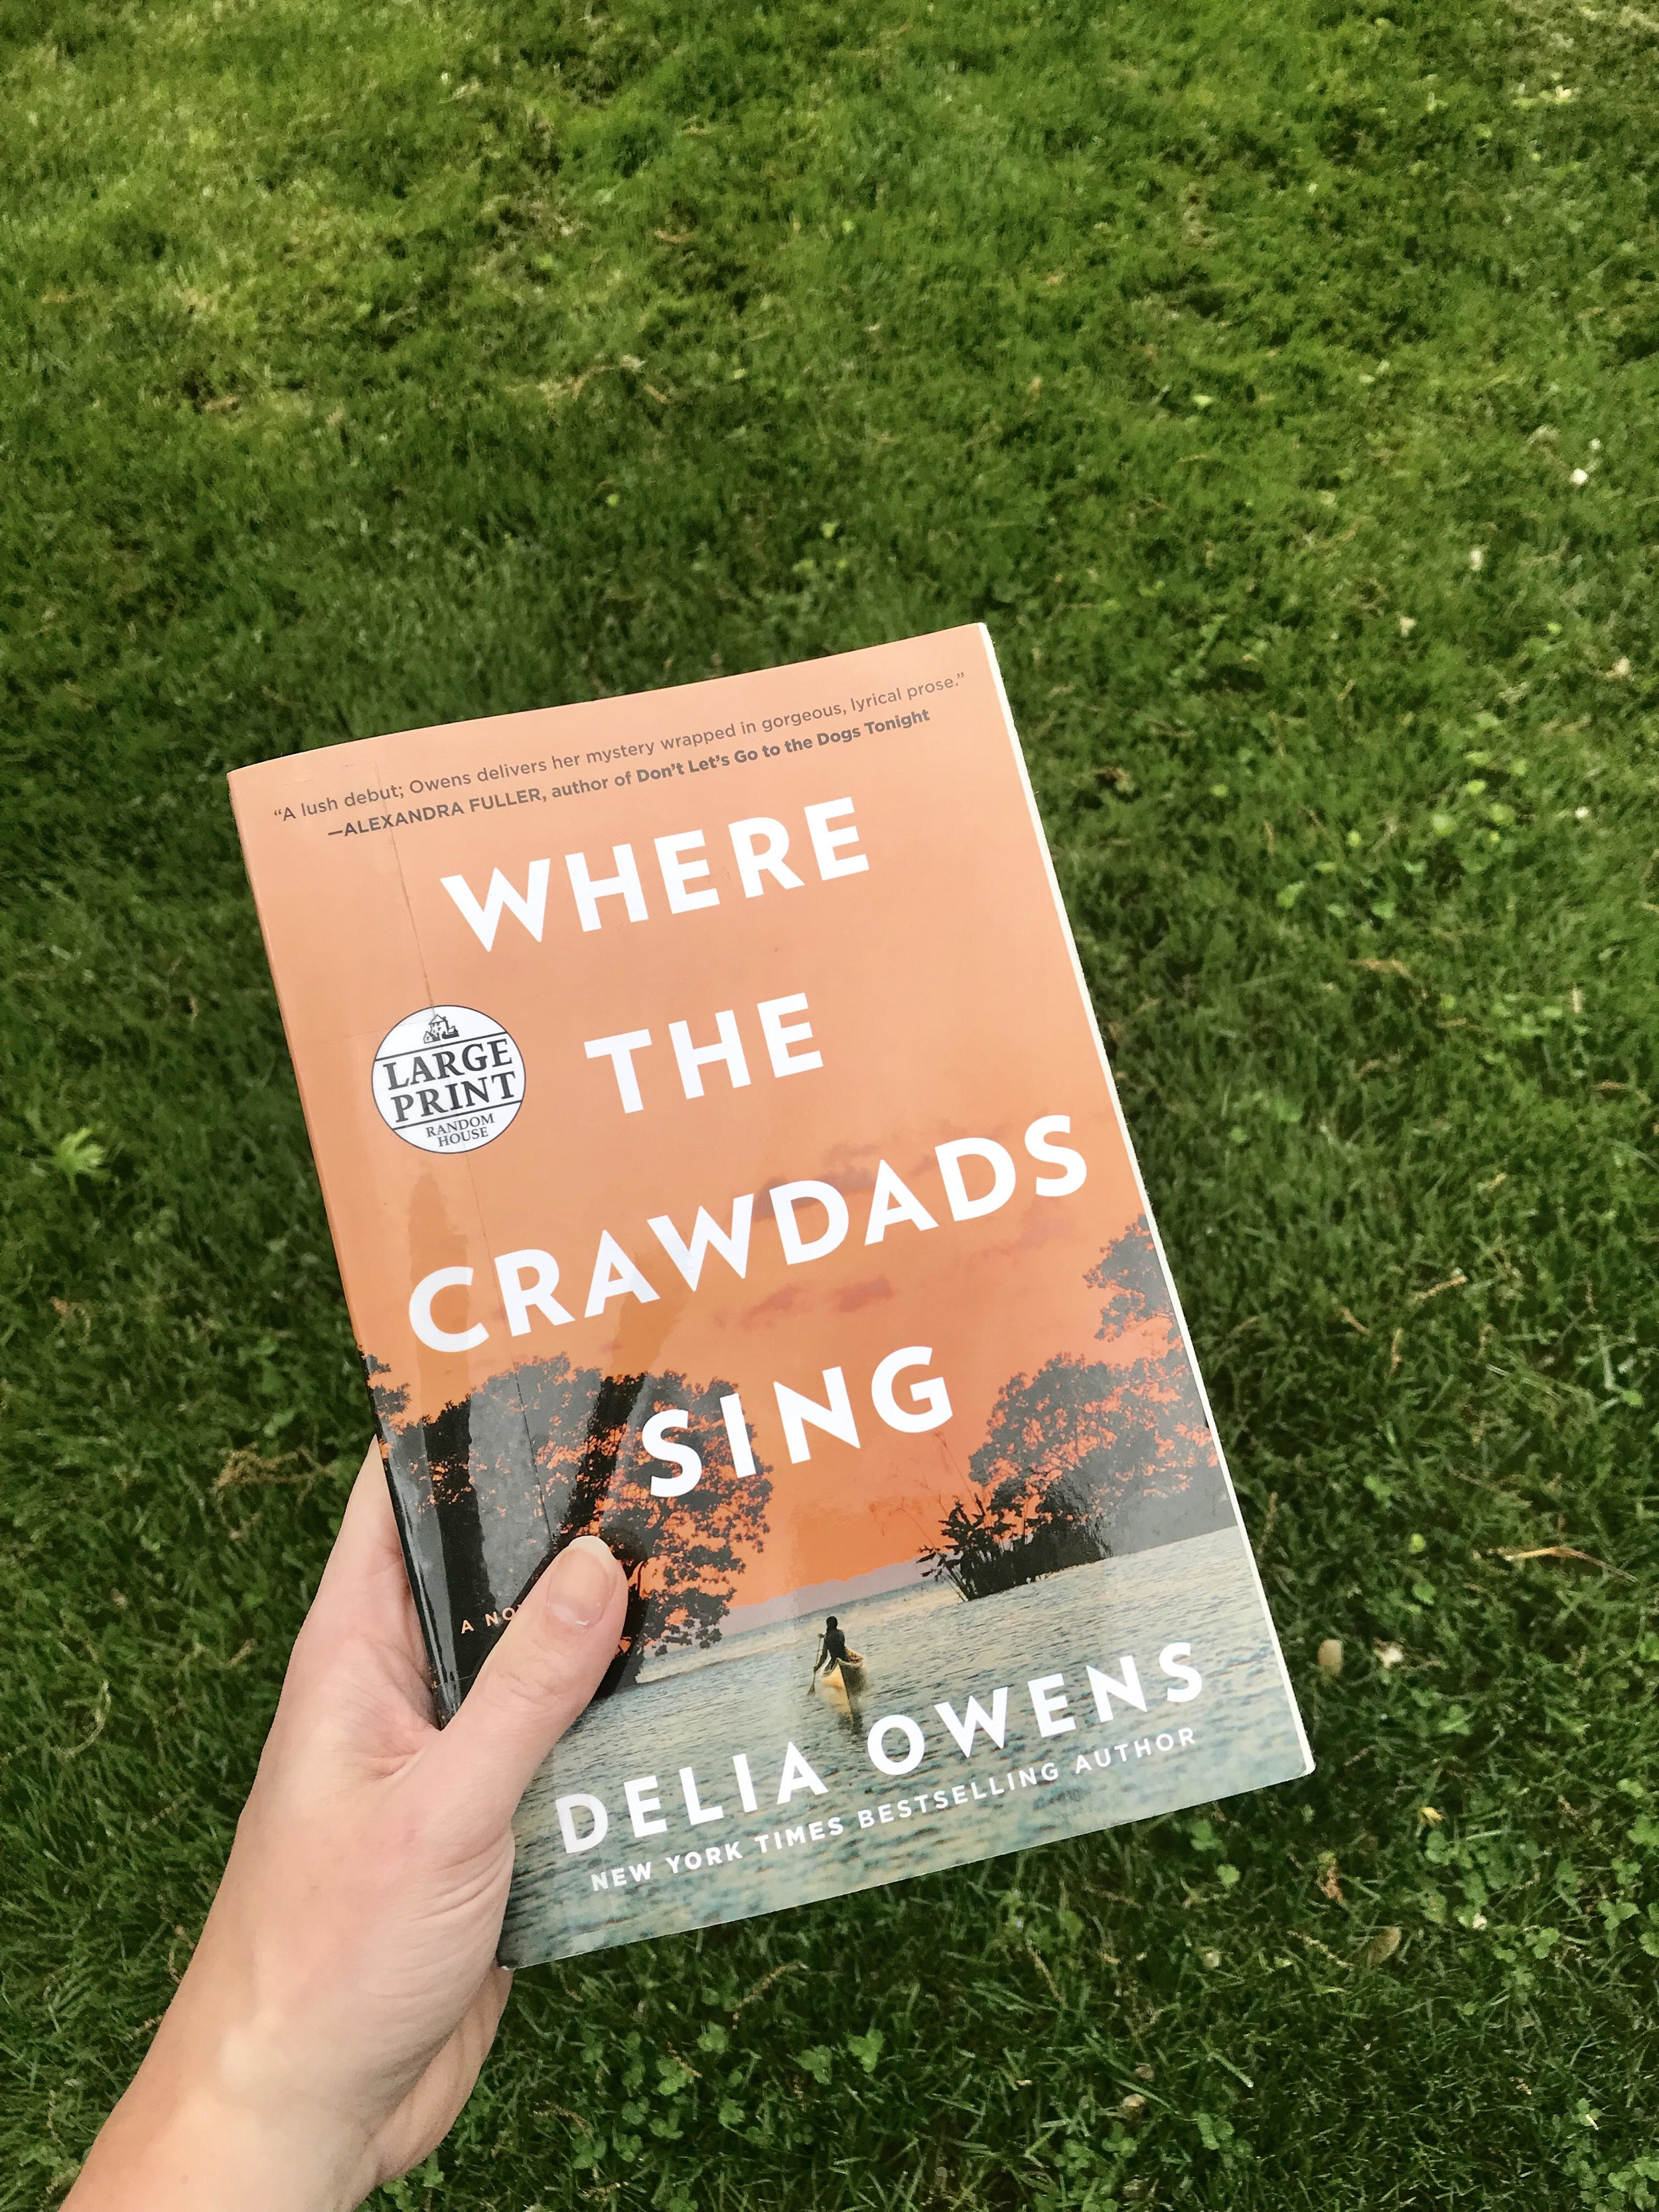 3. Current Library Book - Picked up Where the Crawdads Sing from the library this week. I'm about half way through and it is different than what I normally read, but I like it so far. Who else has read it?